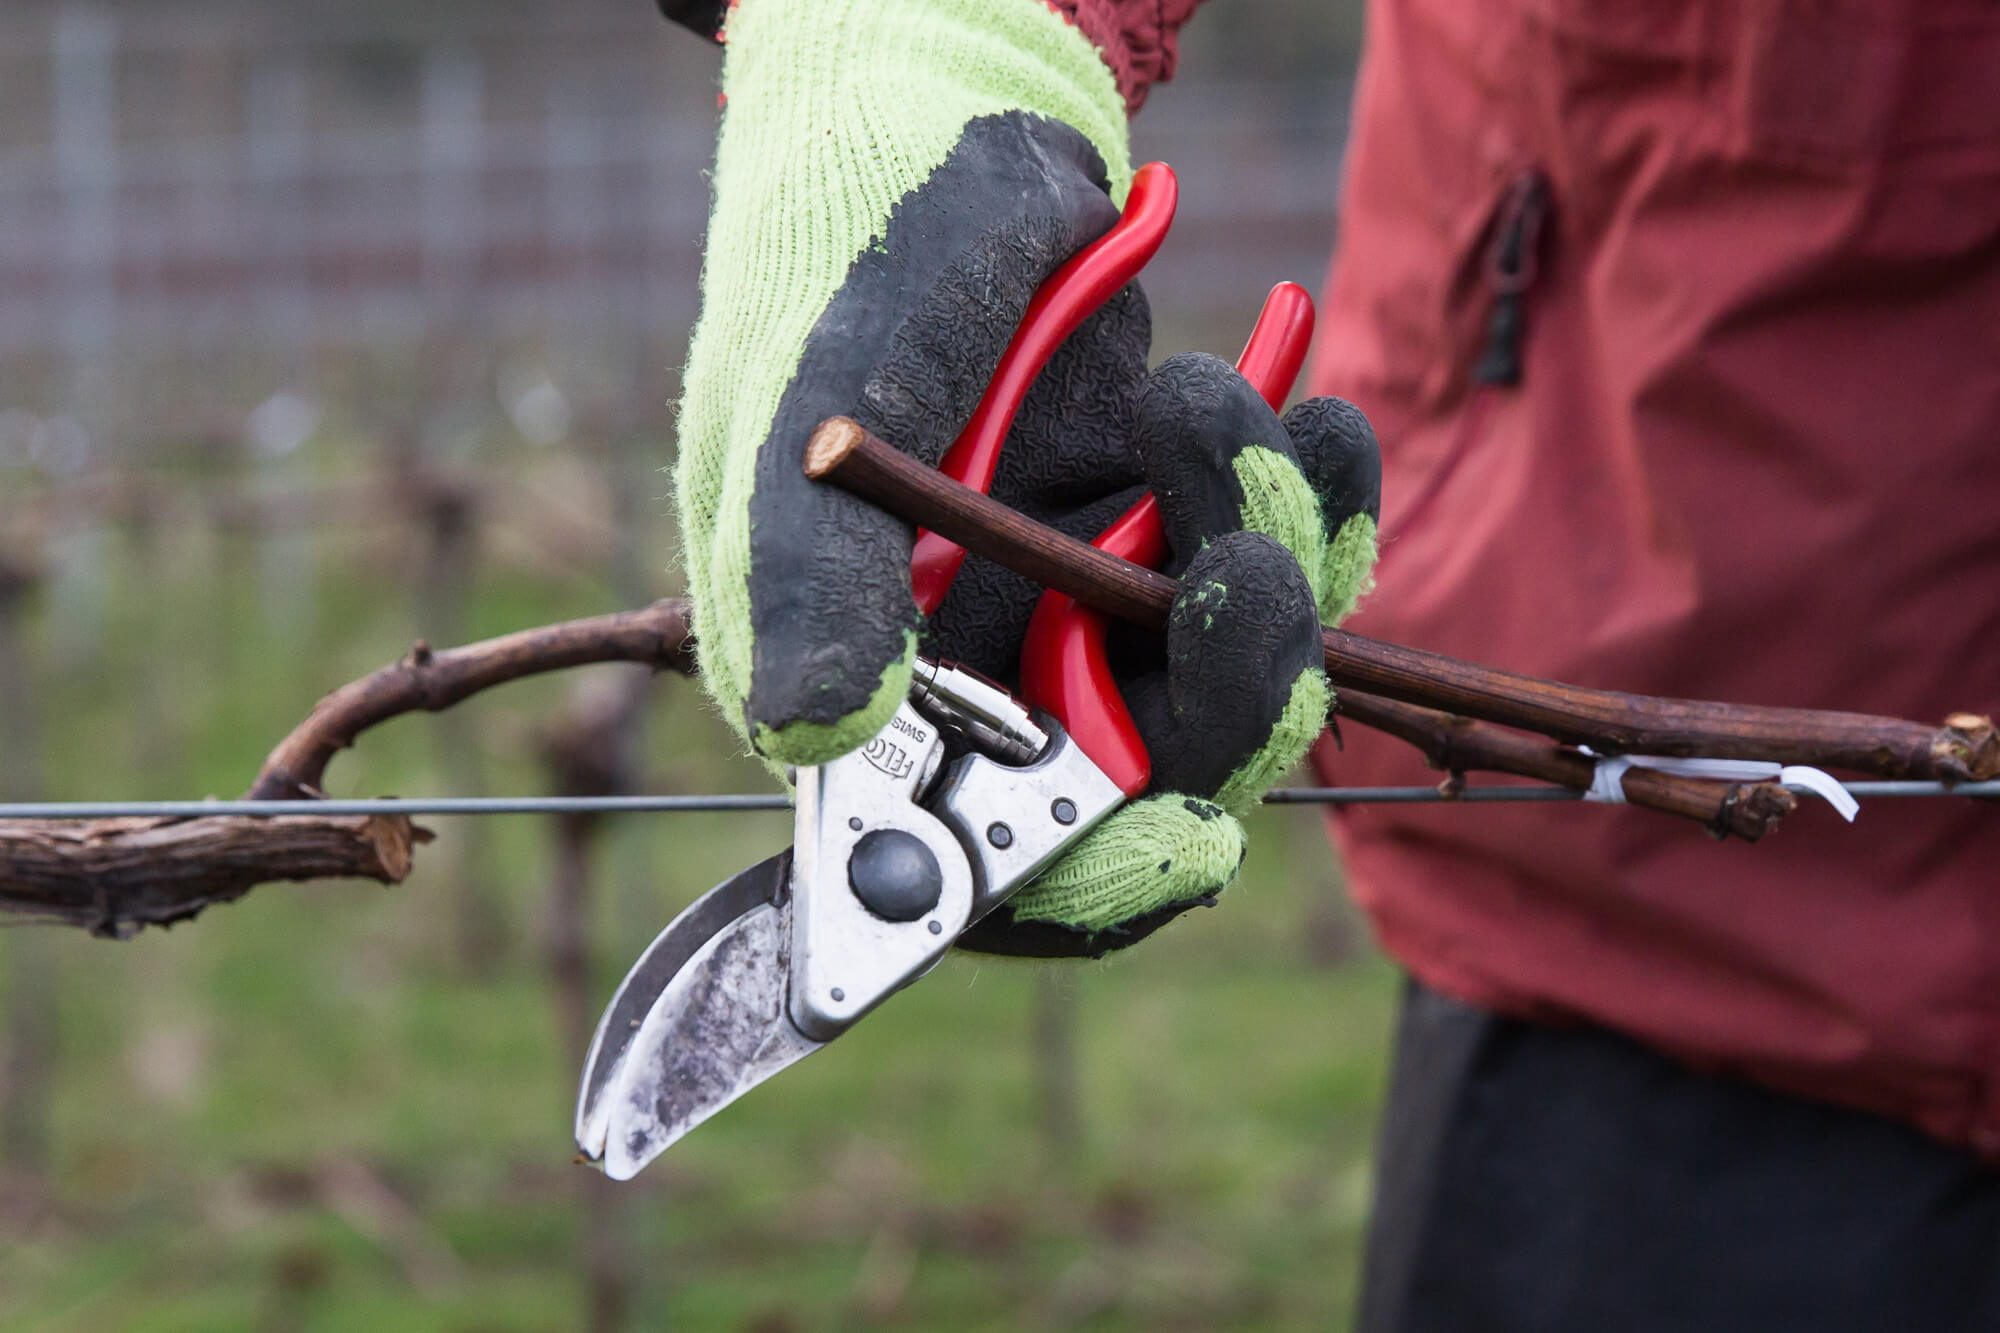 Hand Pruning